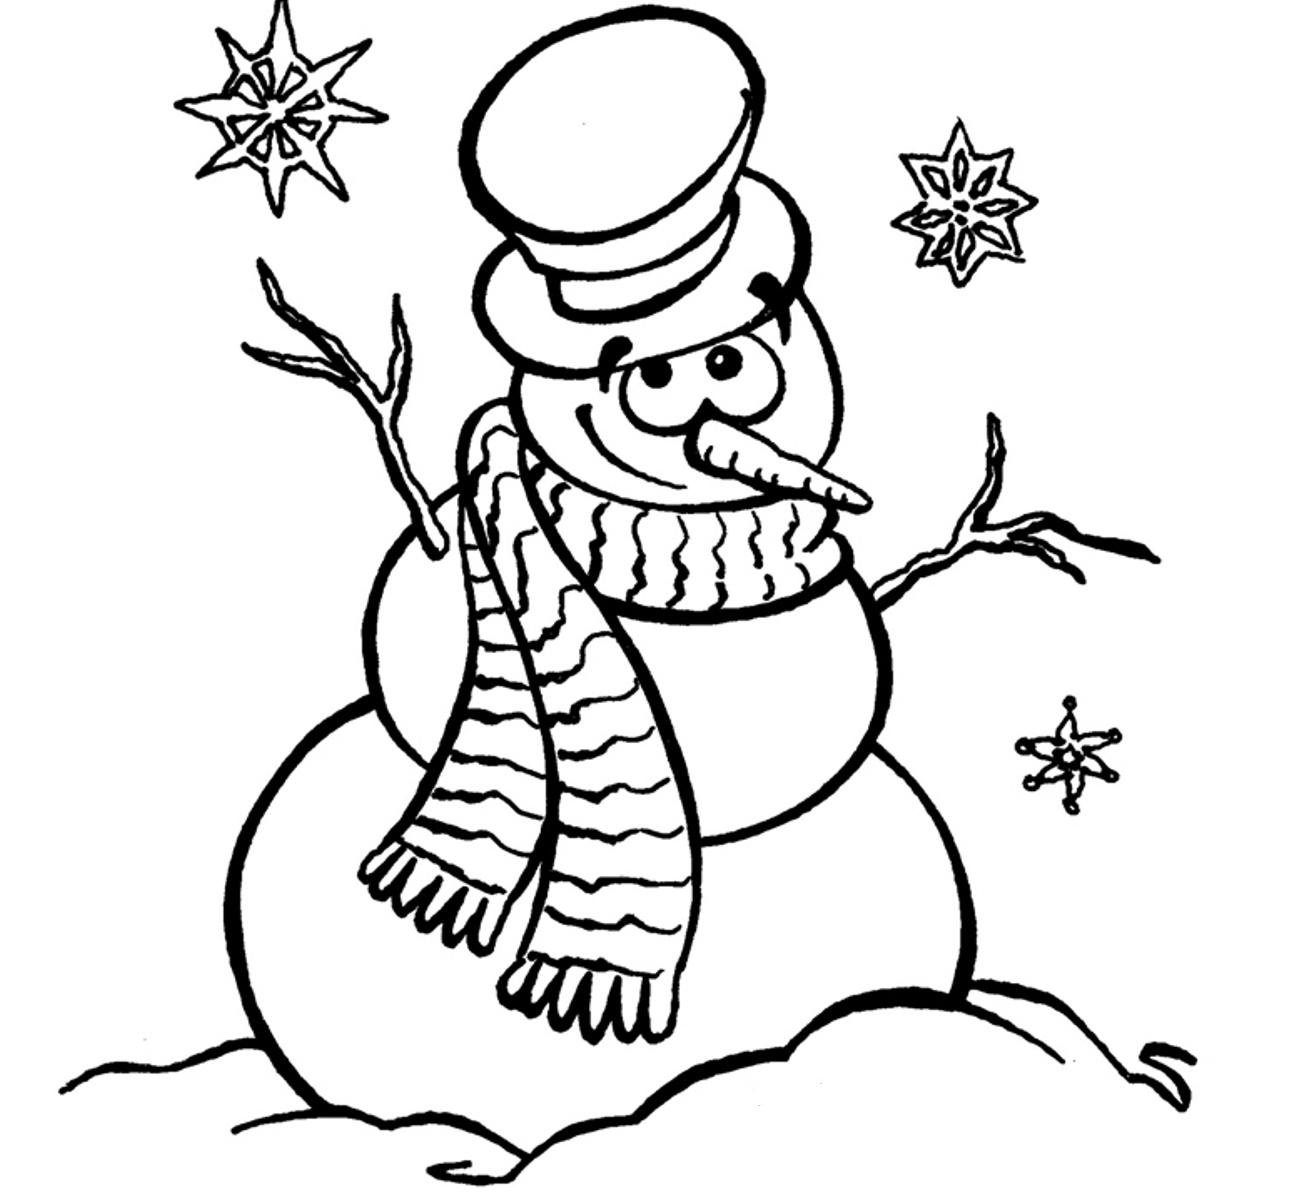 1291x1194 Drawn Snowman Colouring Page